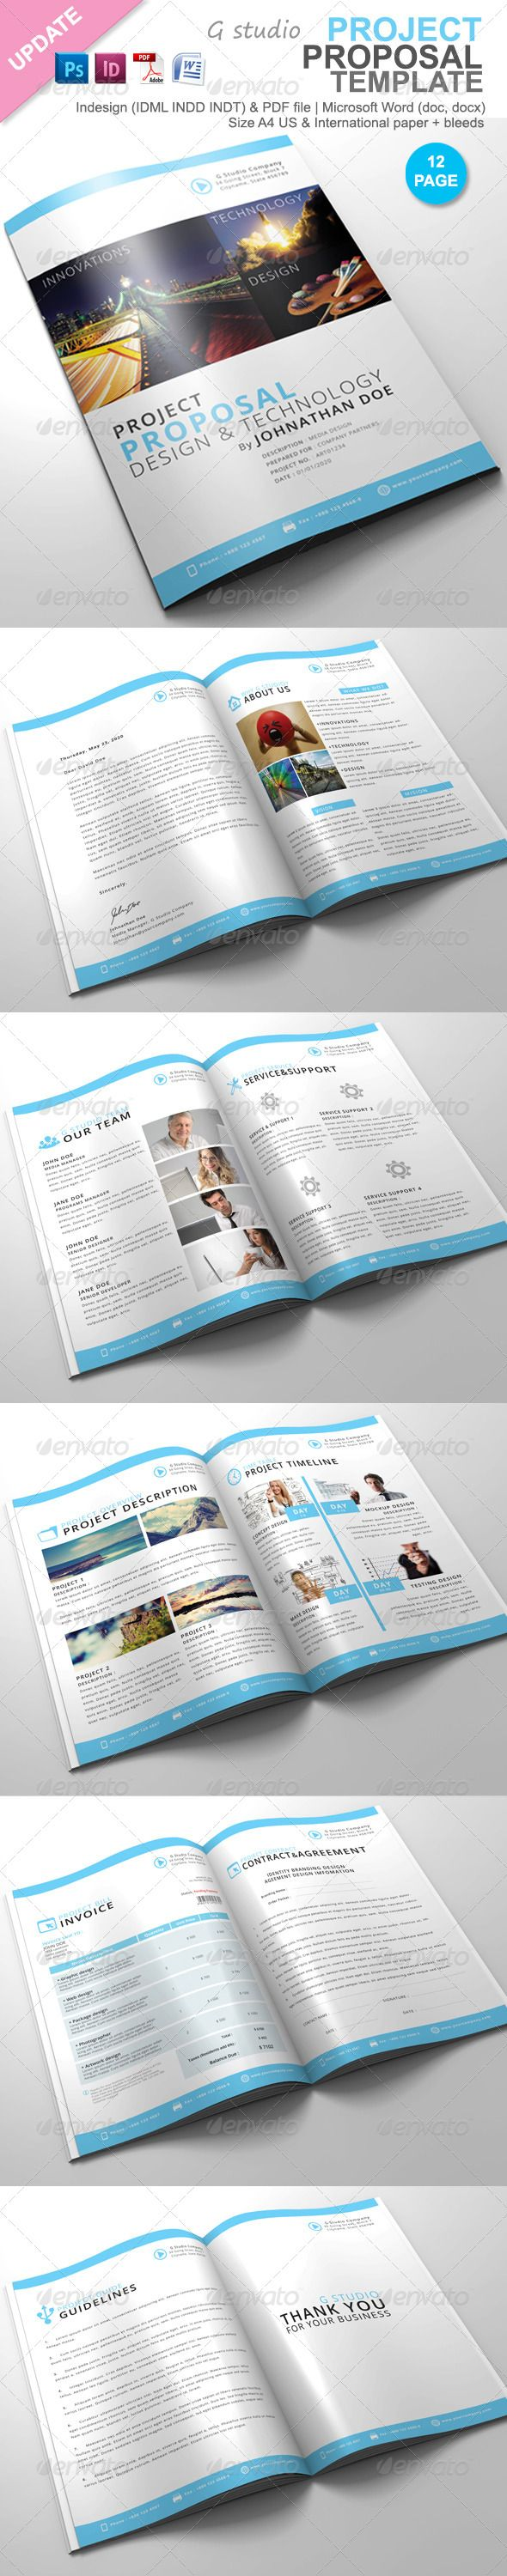 Best ContractProposal Layouts Images On   Proposal